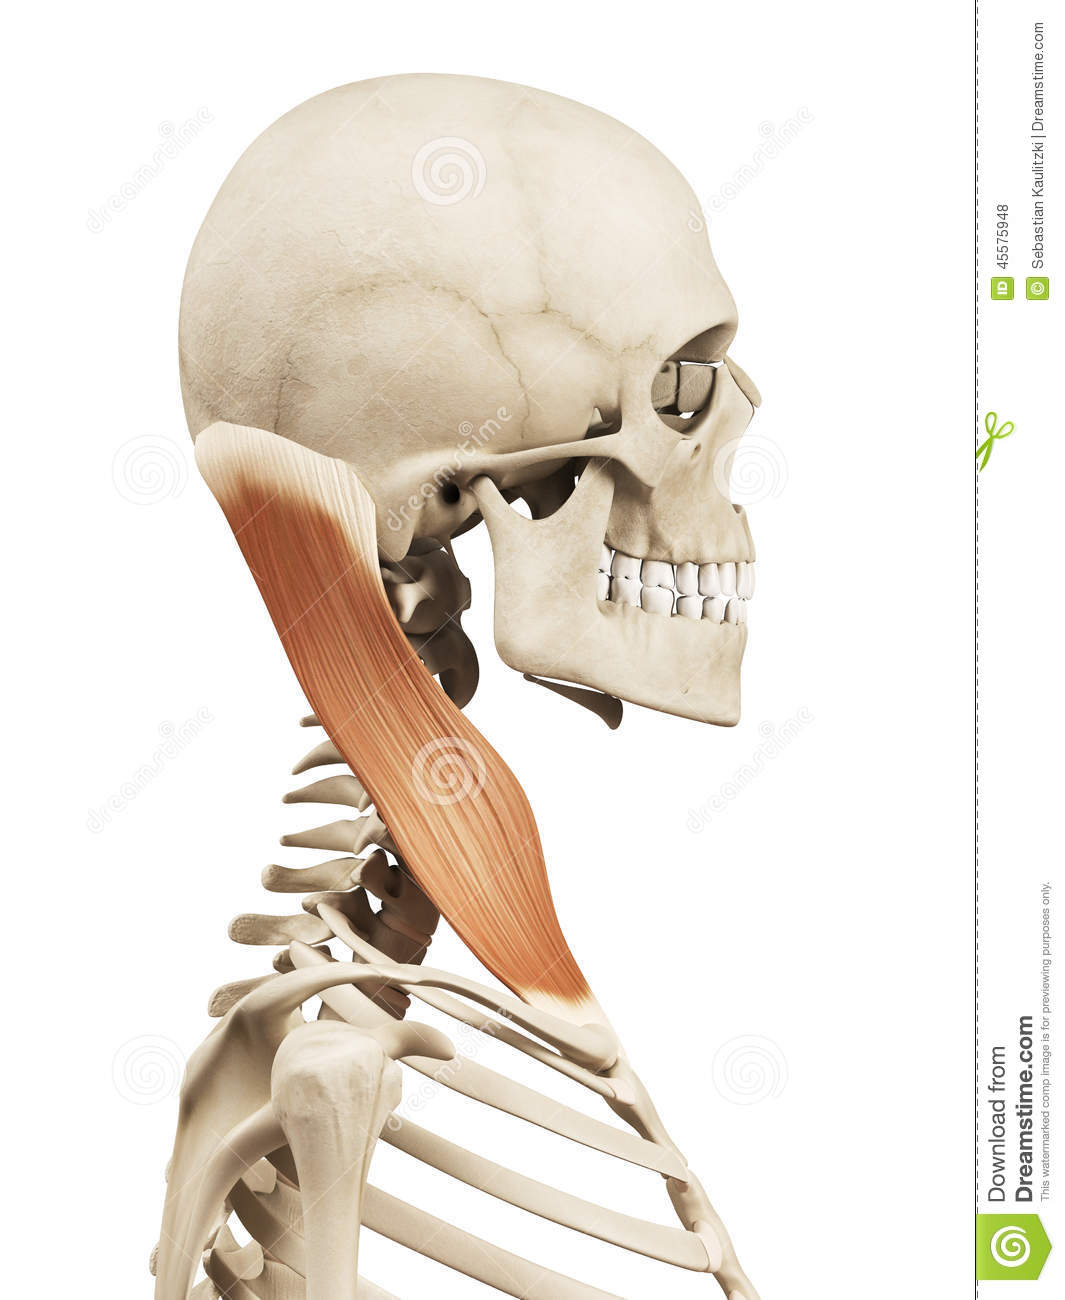 The sternocleidomastoid stock illustration. Illustration of skeleton ...